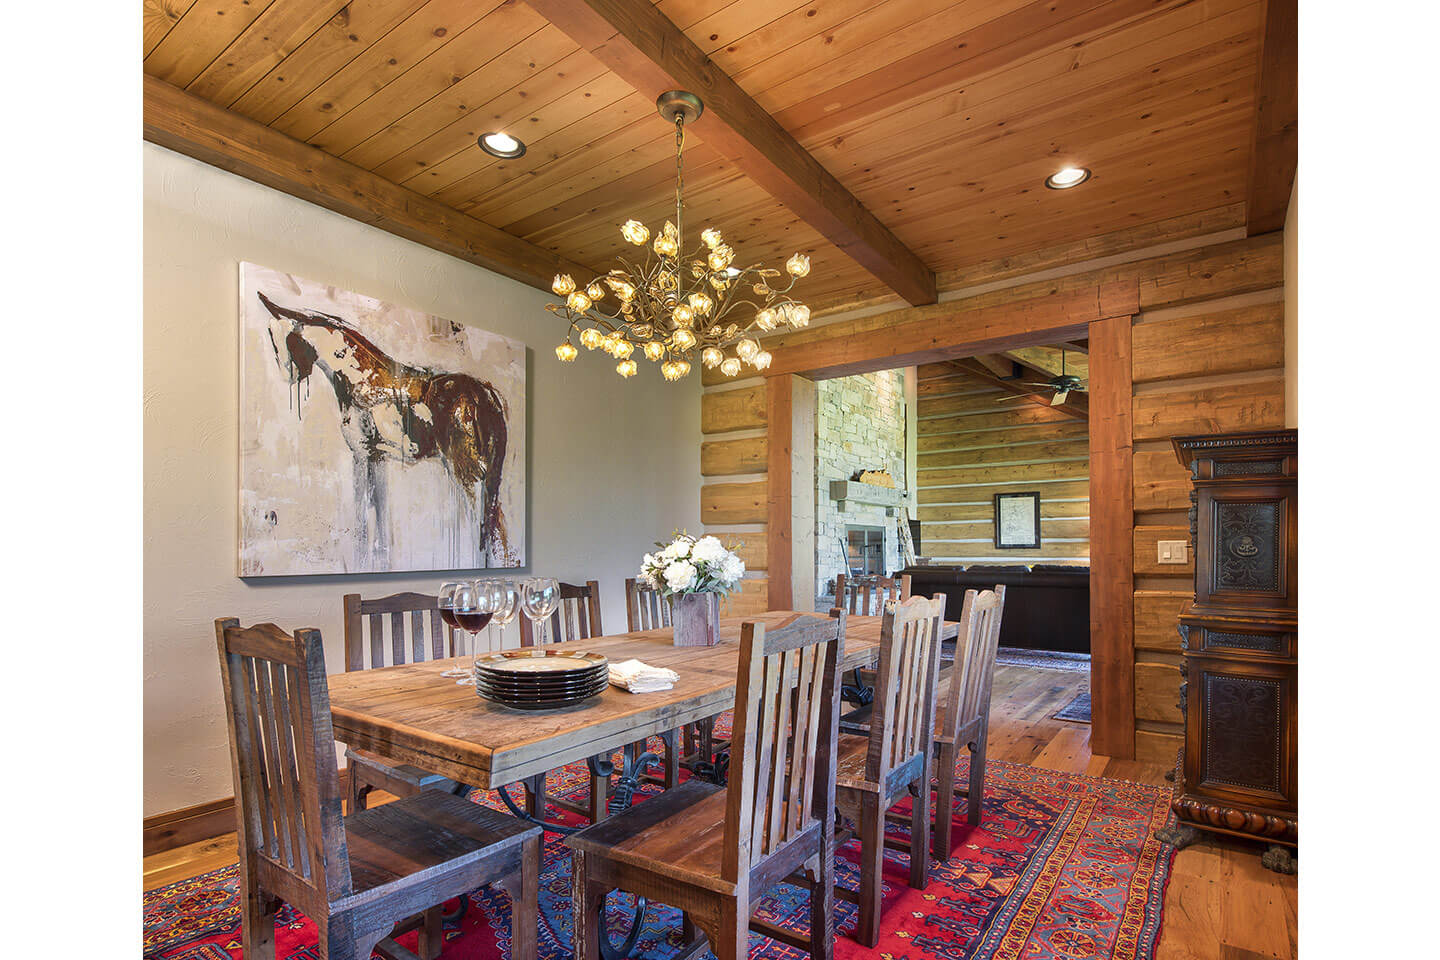 Dining room with log walls and rustic furniture